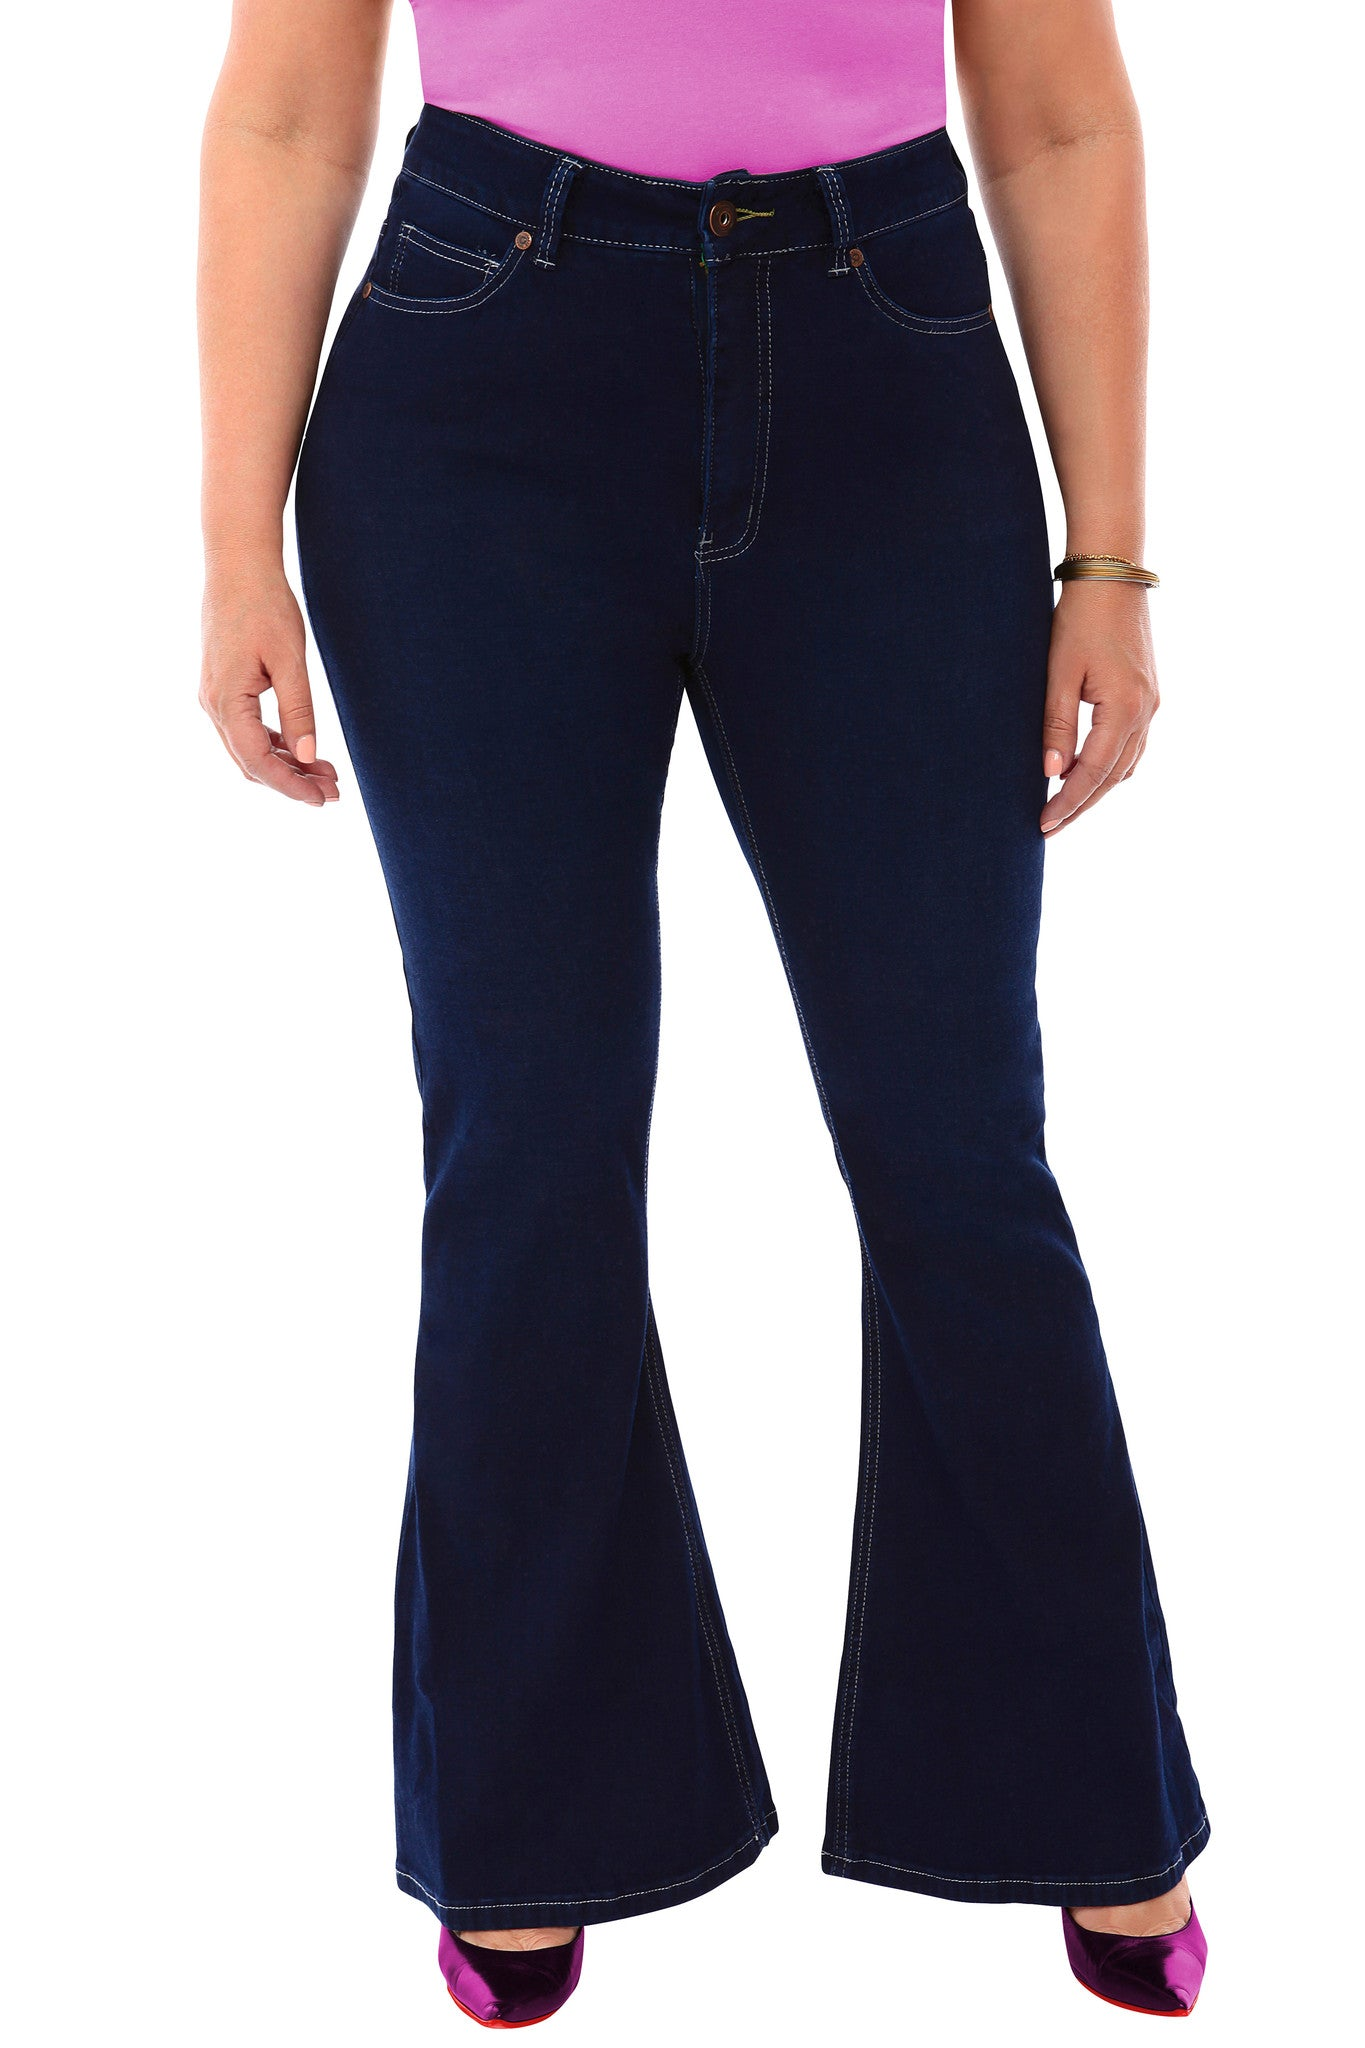 360 Stretch High Rise Flea Market Flare Jeans in Blue Depths - SVOBODA 17d34ea89f